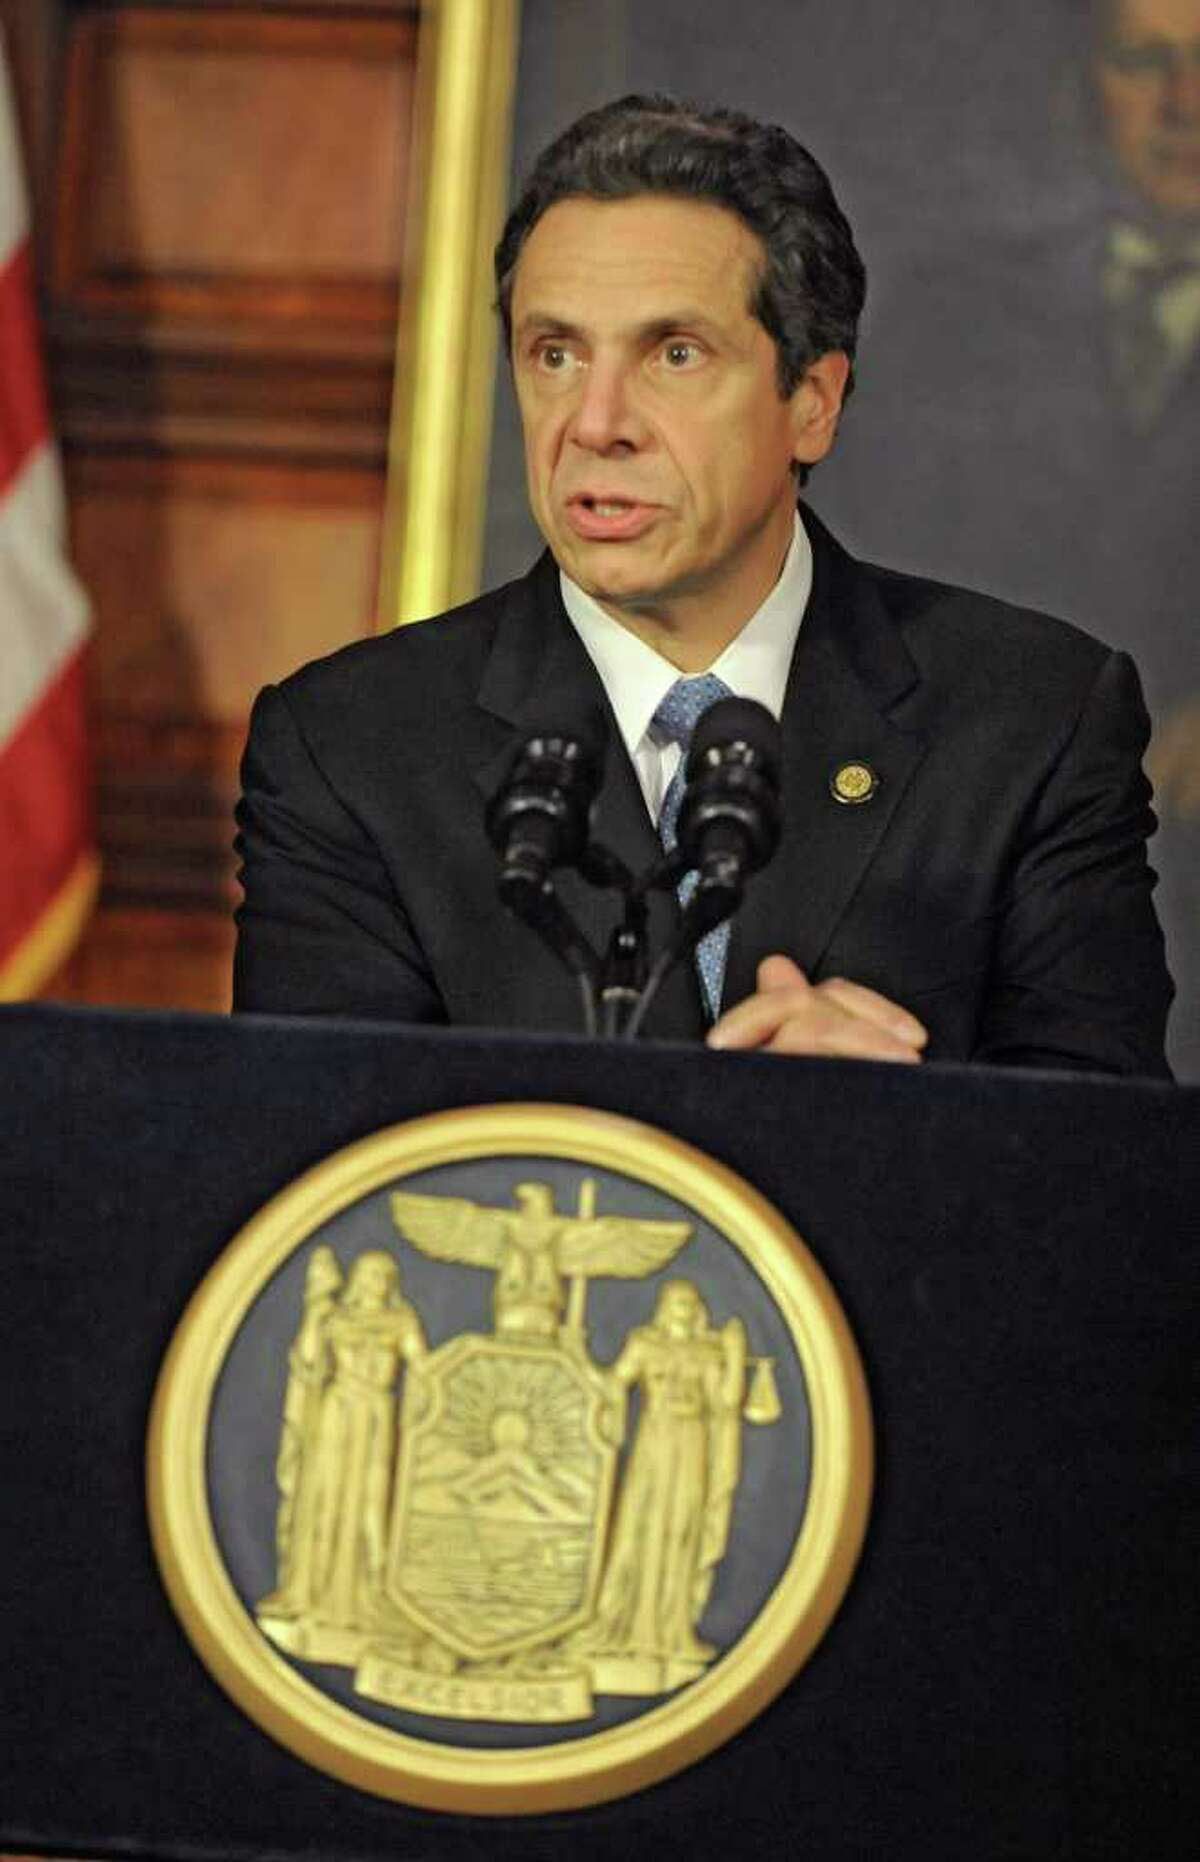 NYS Governor Andrew Cuomo answers questions at a press conference during a special session at the Capitol on Wednesday, Dec. 7, 2011 in Albany, N.Y. (Lori Van Buren / Times Union)